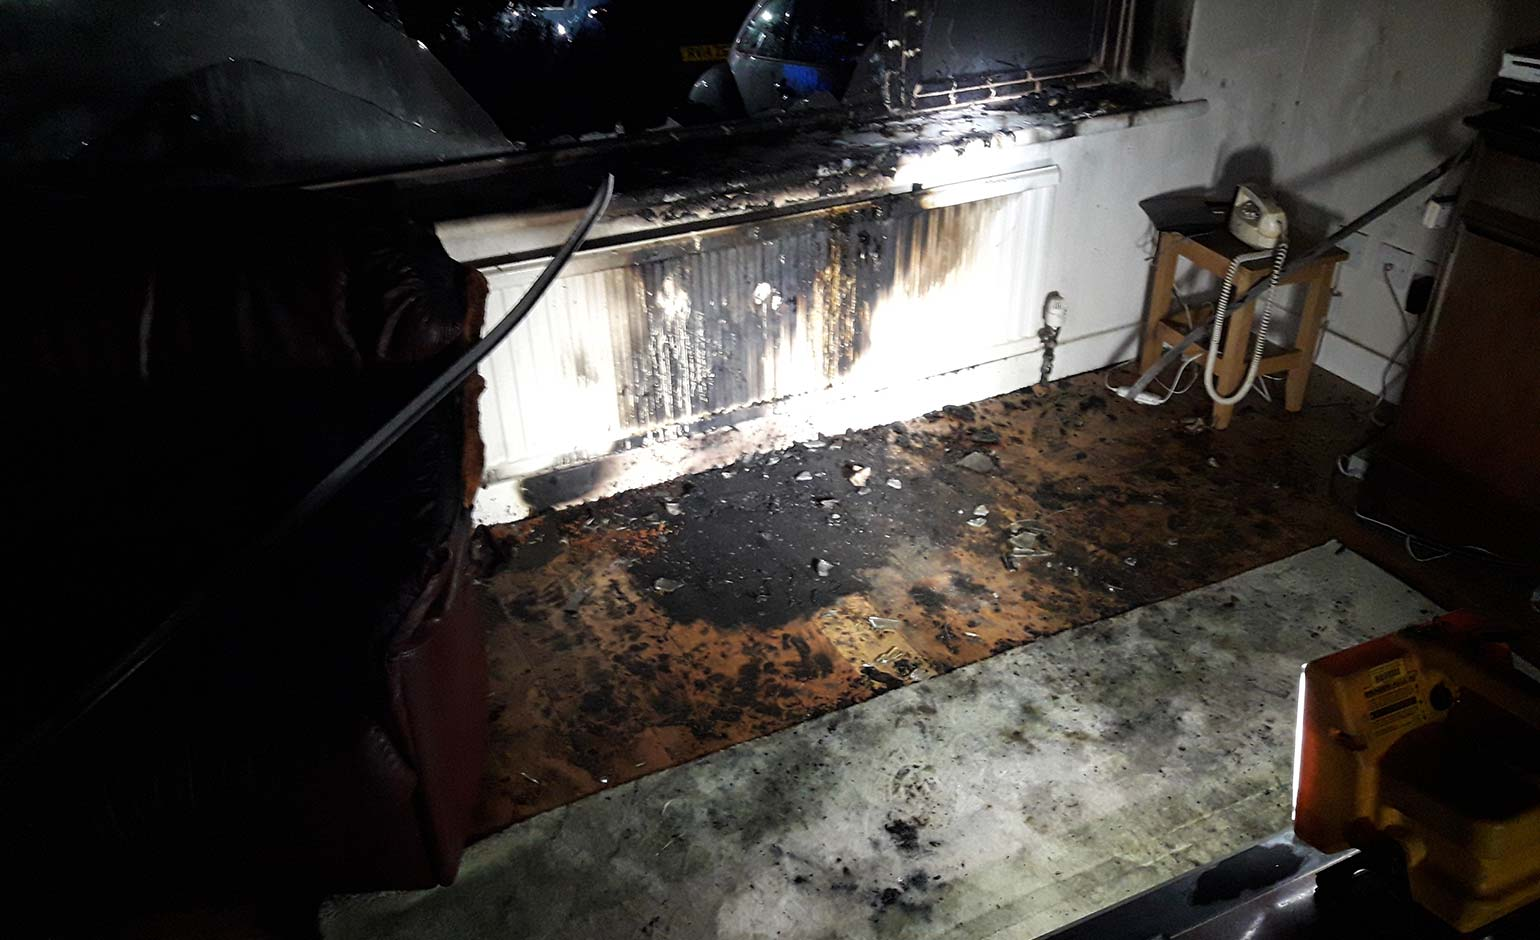 Avon Fire & Rescue Service warns of the dangers of cheap electrical products